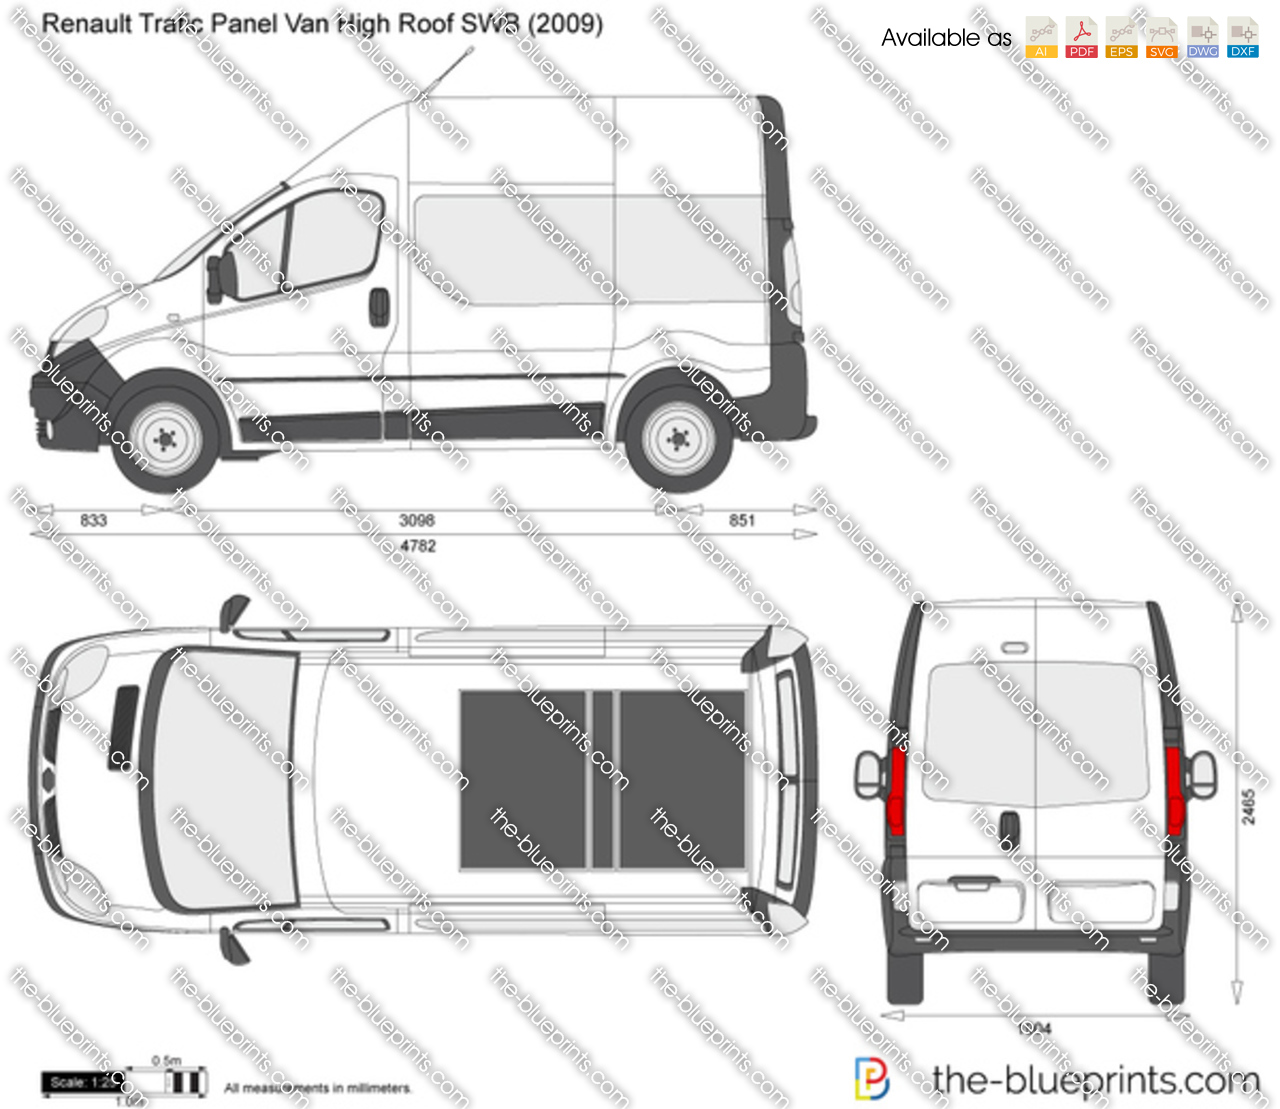 renault trafic panel van high roof swb vector drawing. Black Bedroom Furniture Sets. Home Design Ideas